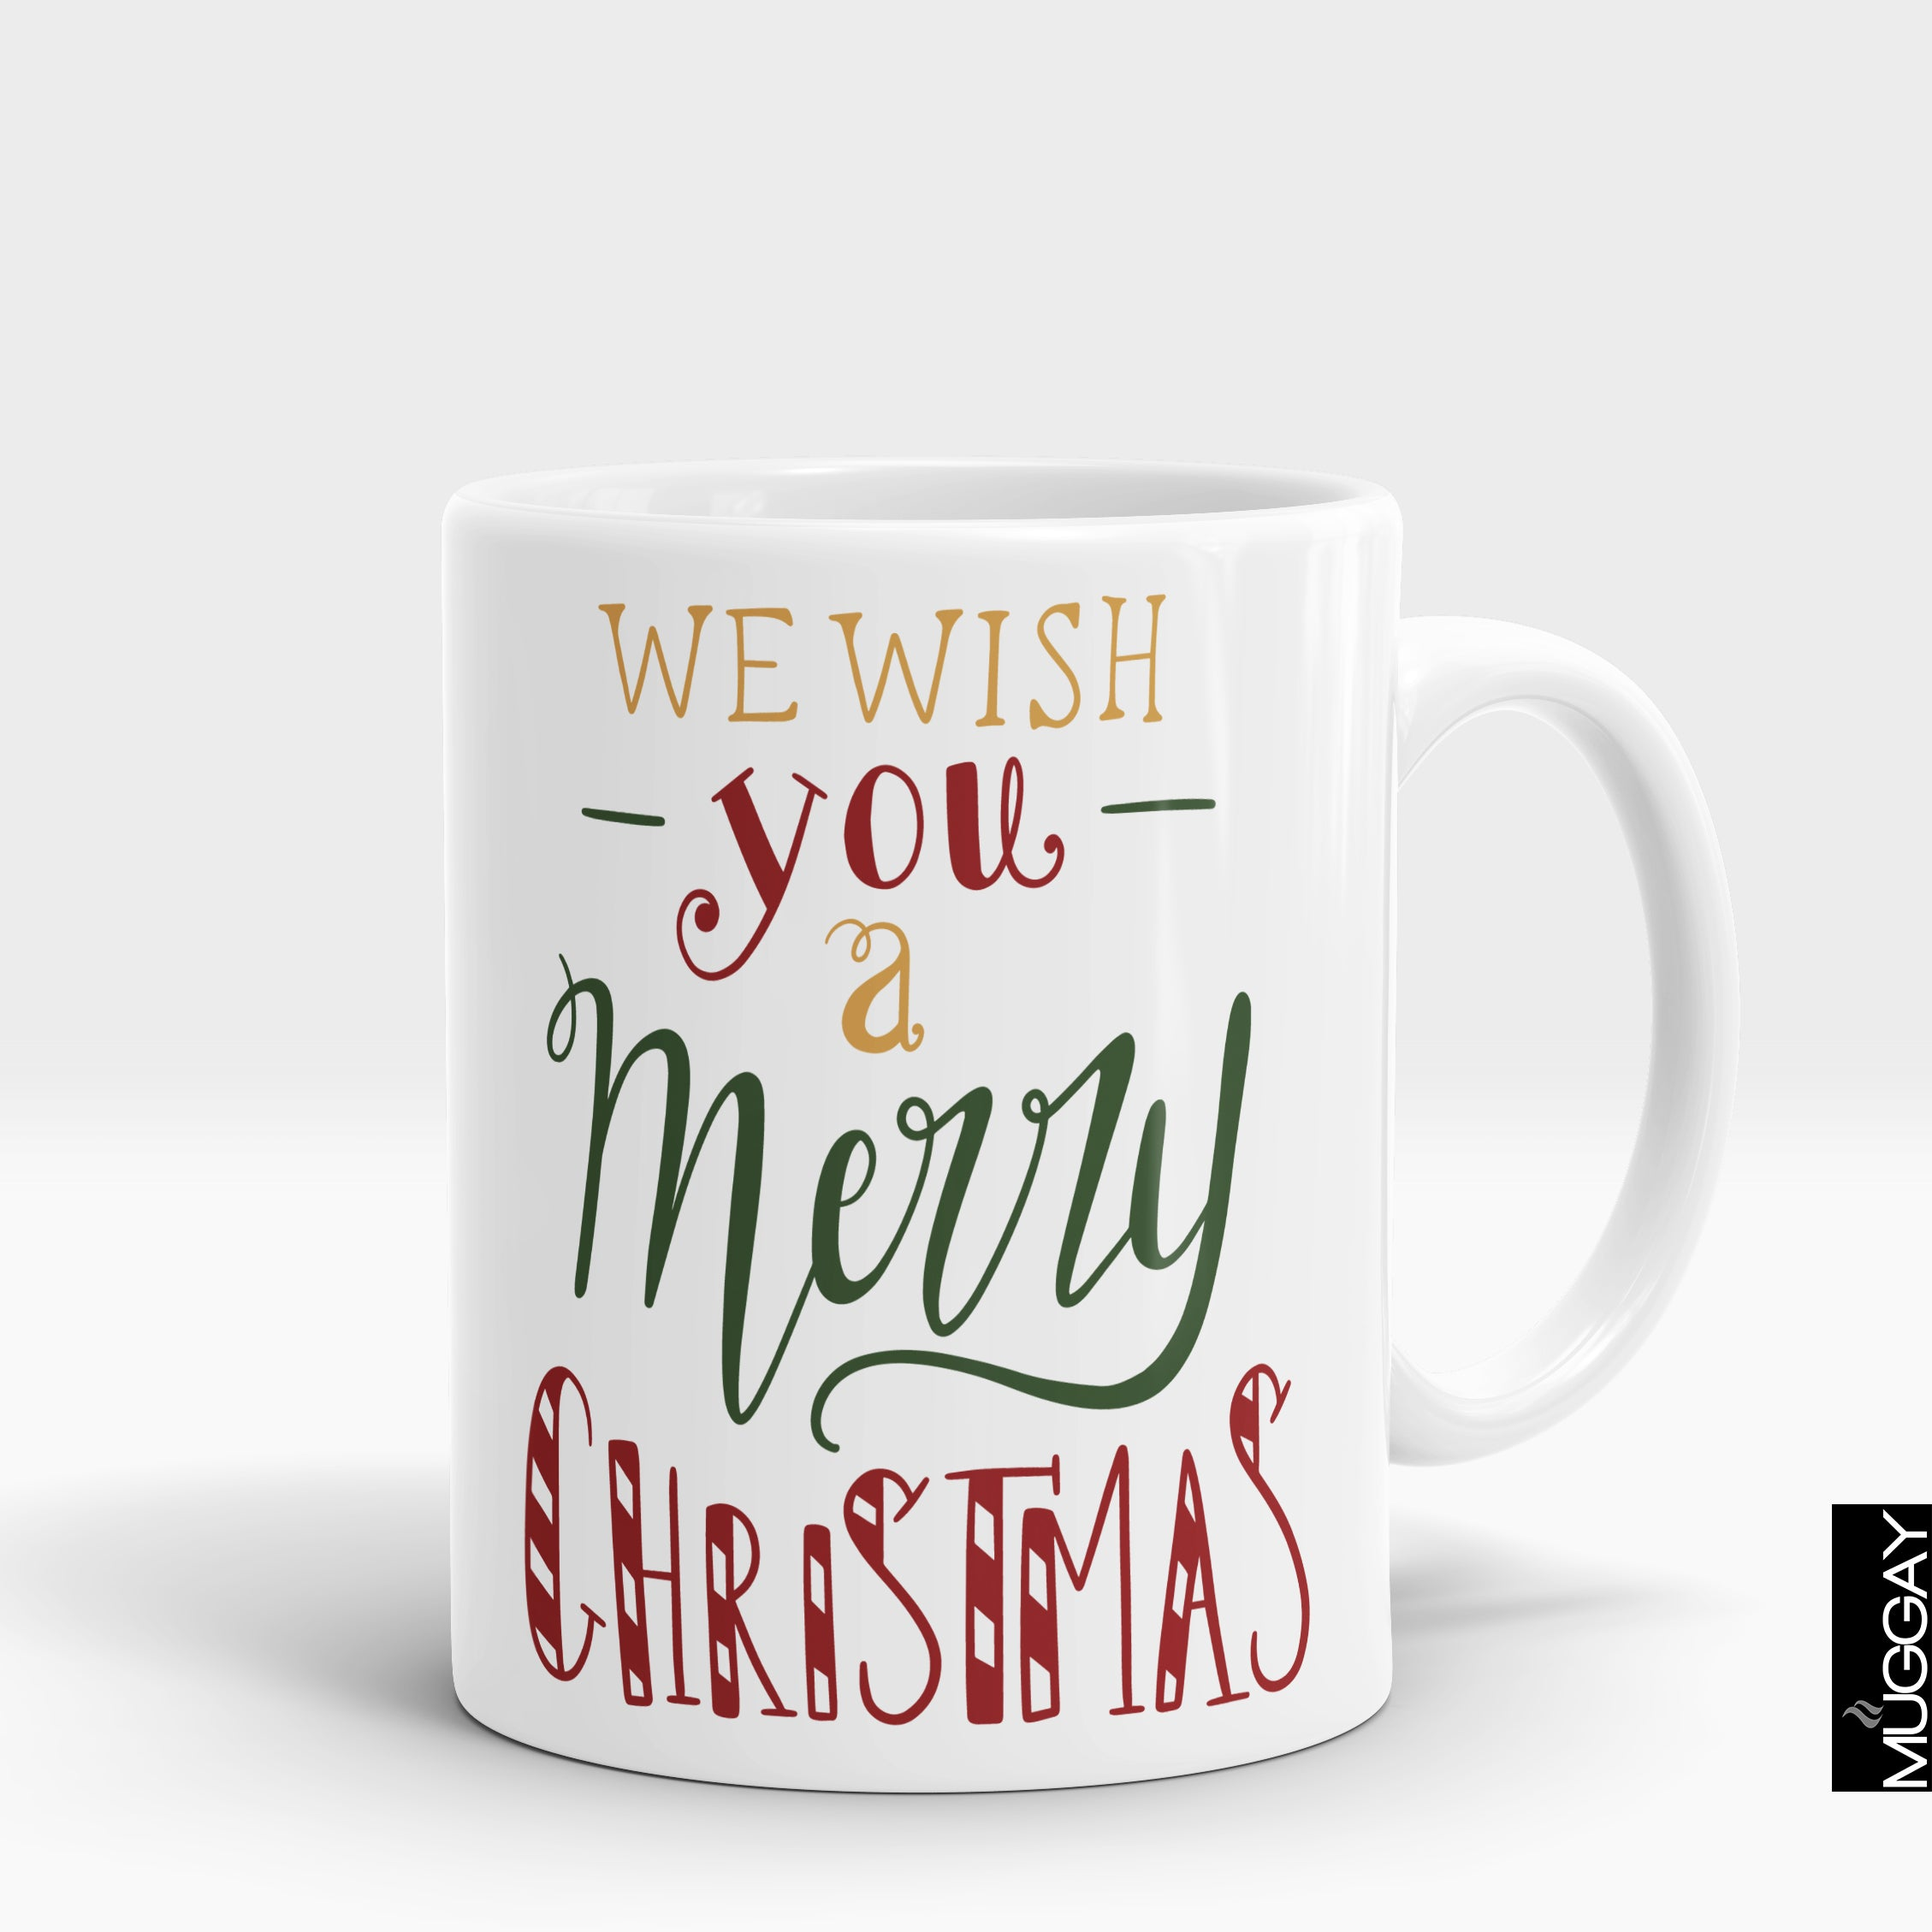 we wish_a_Merry Christmas